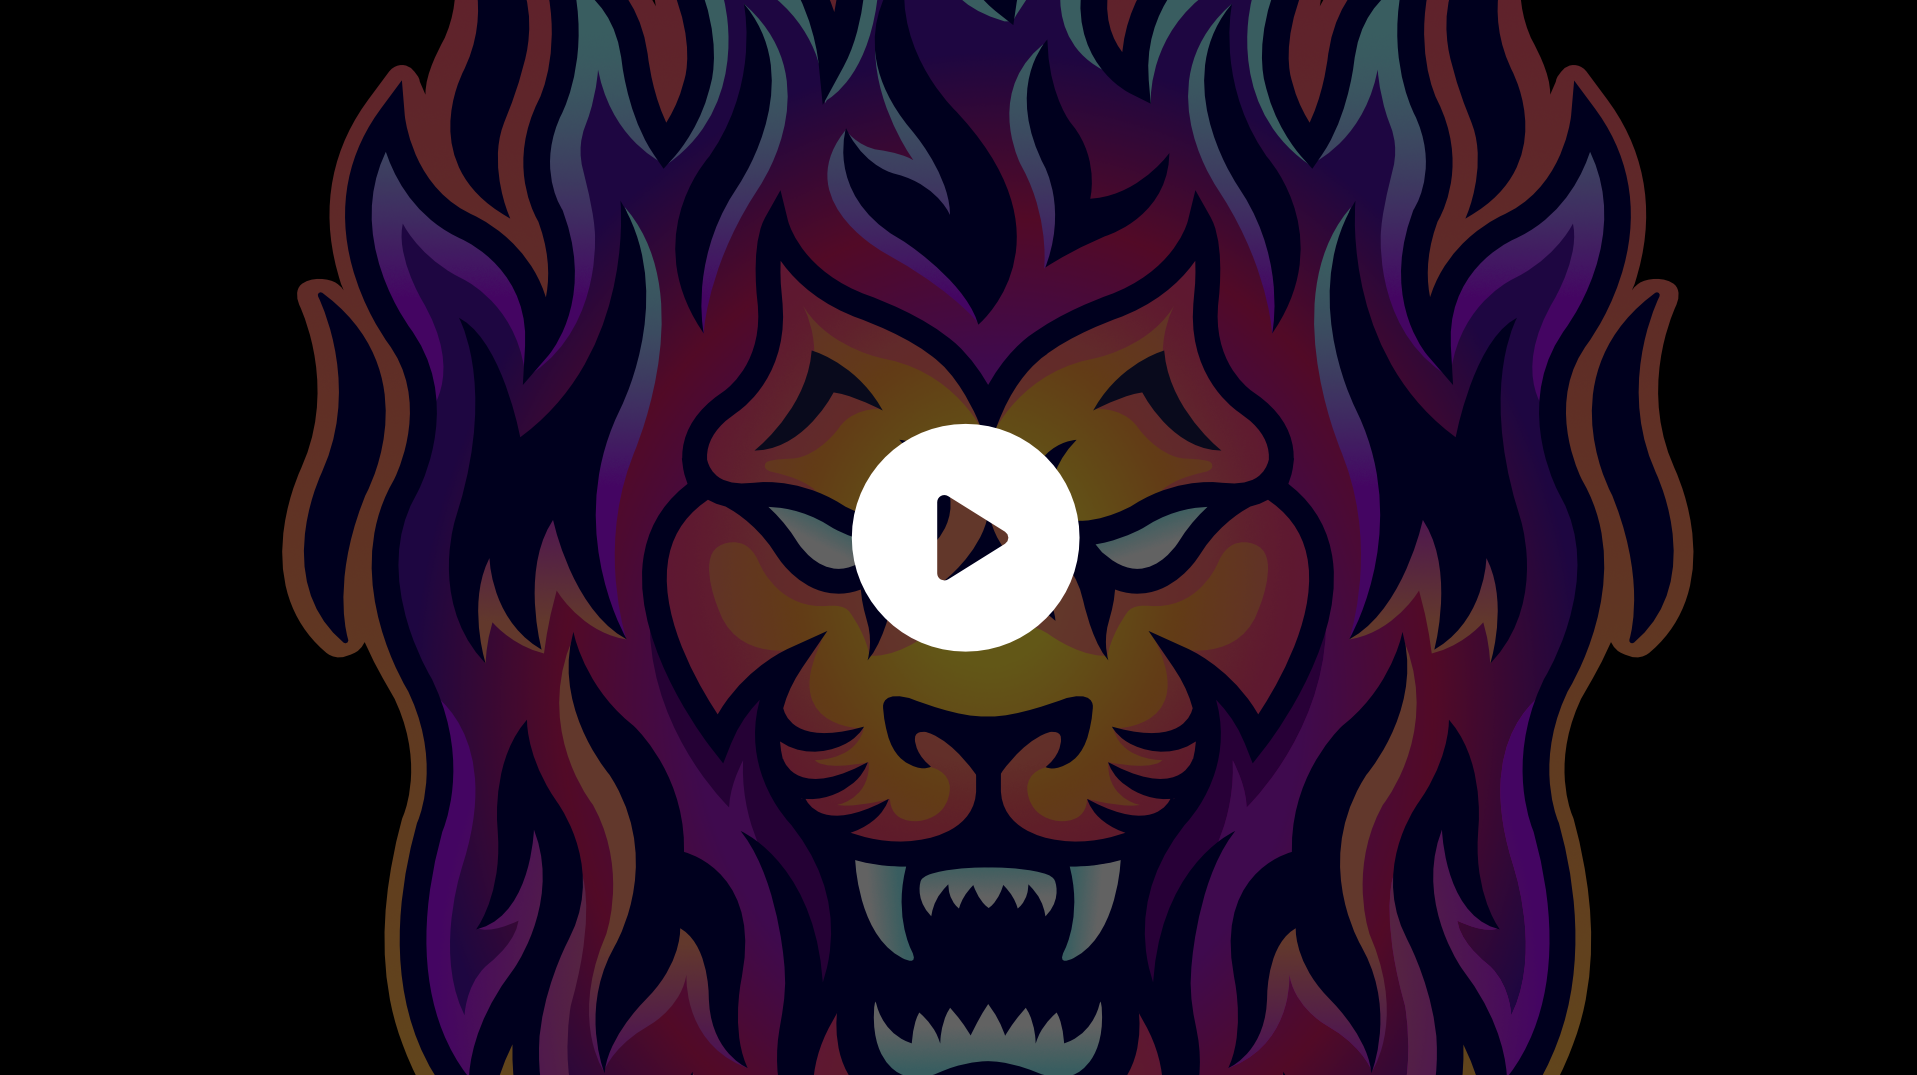 Custom animated twitch alerts using a lion mascot design